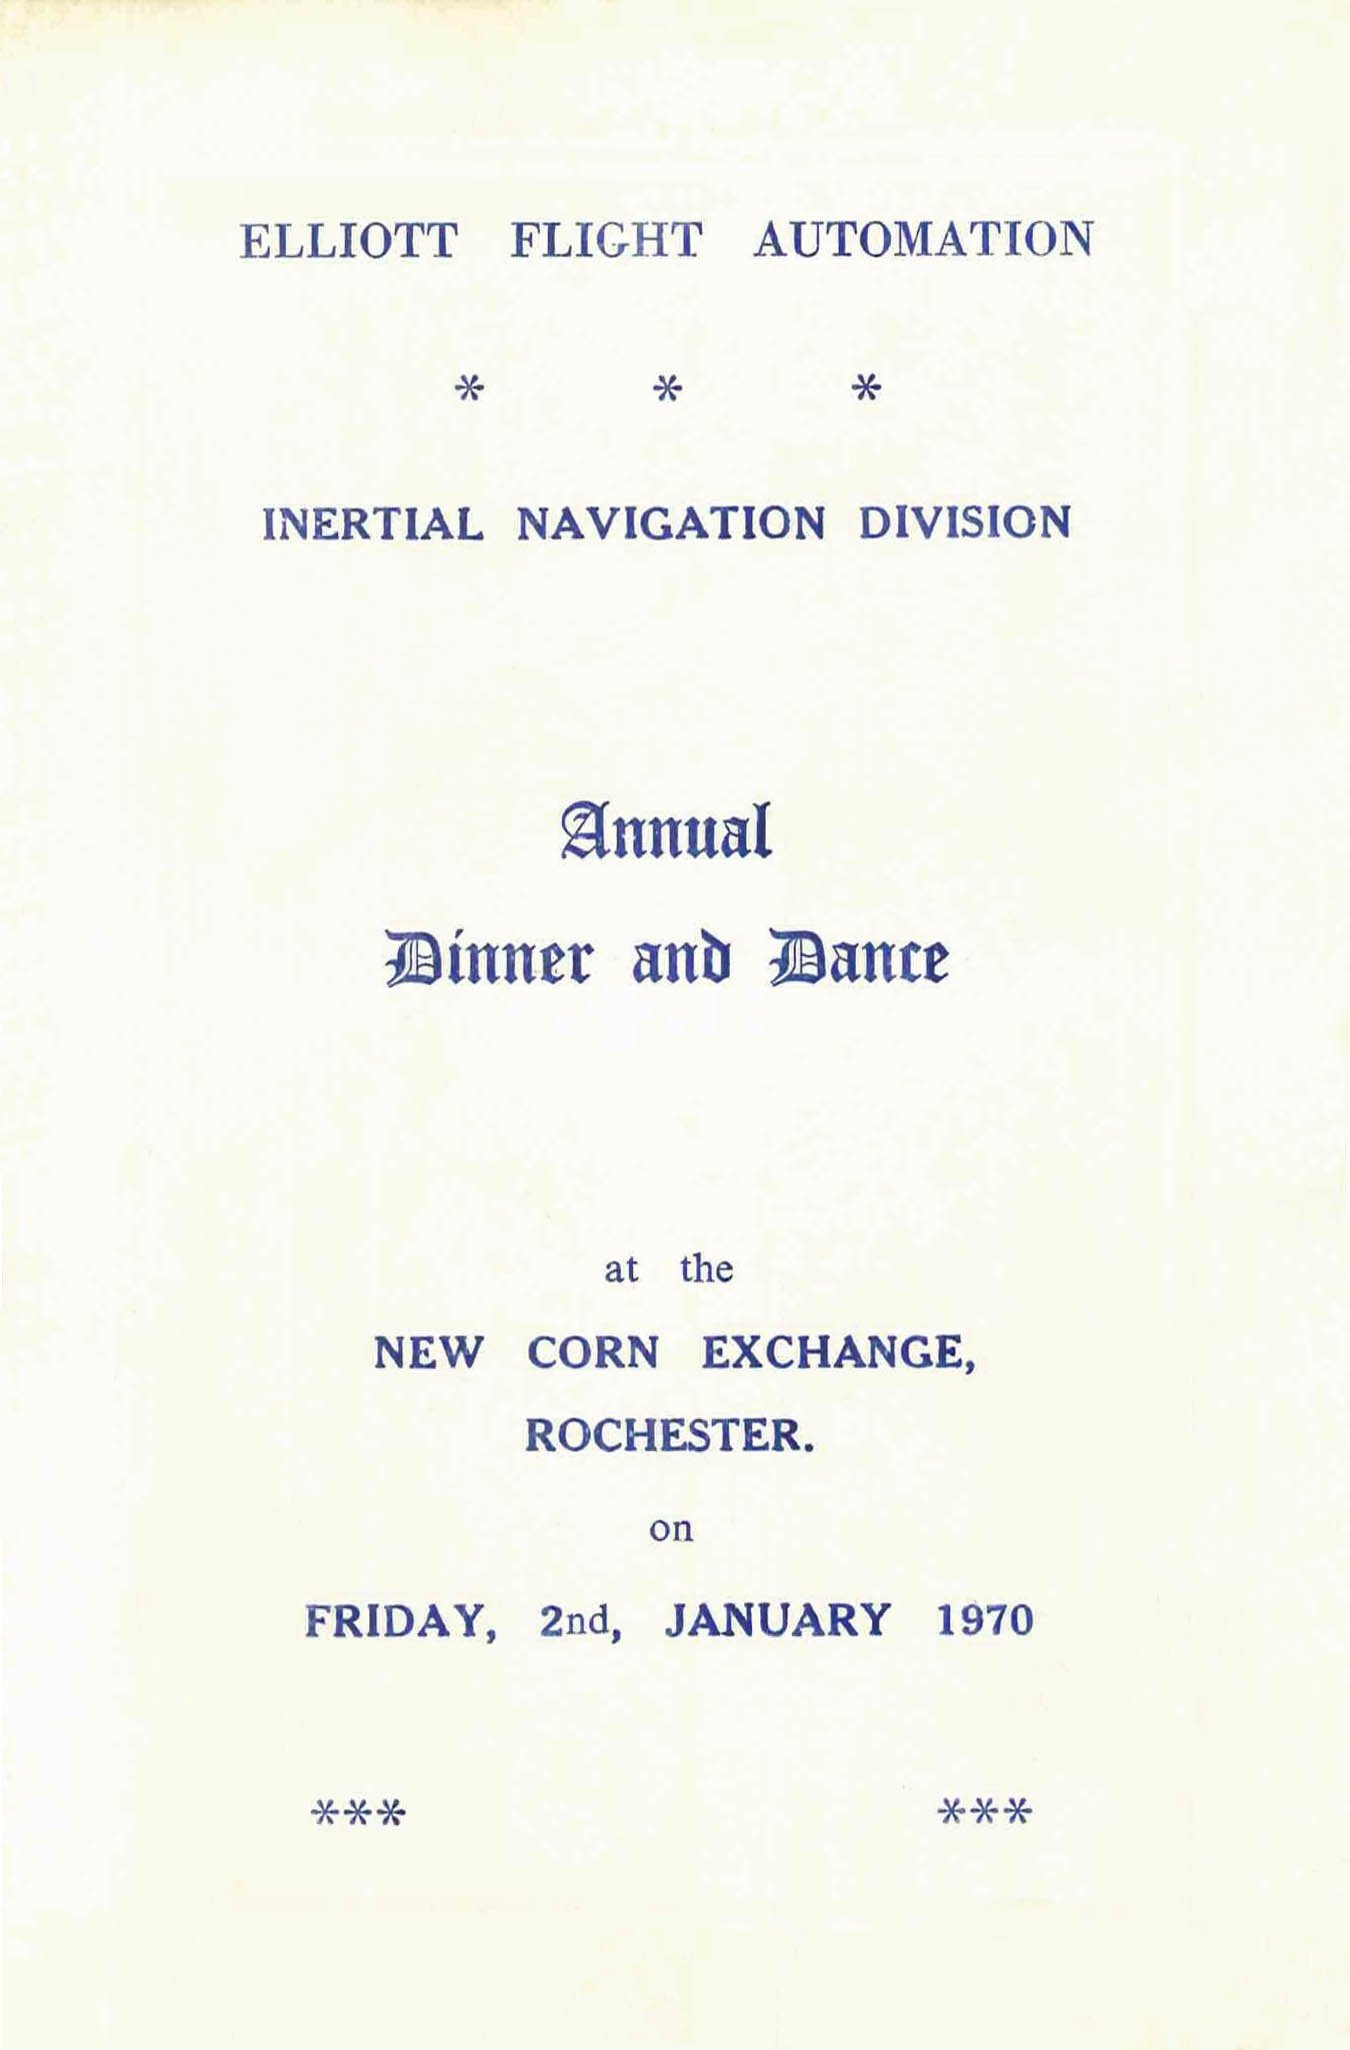 IND Annual Dinner and Dance 1970